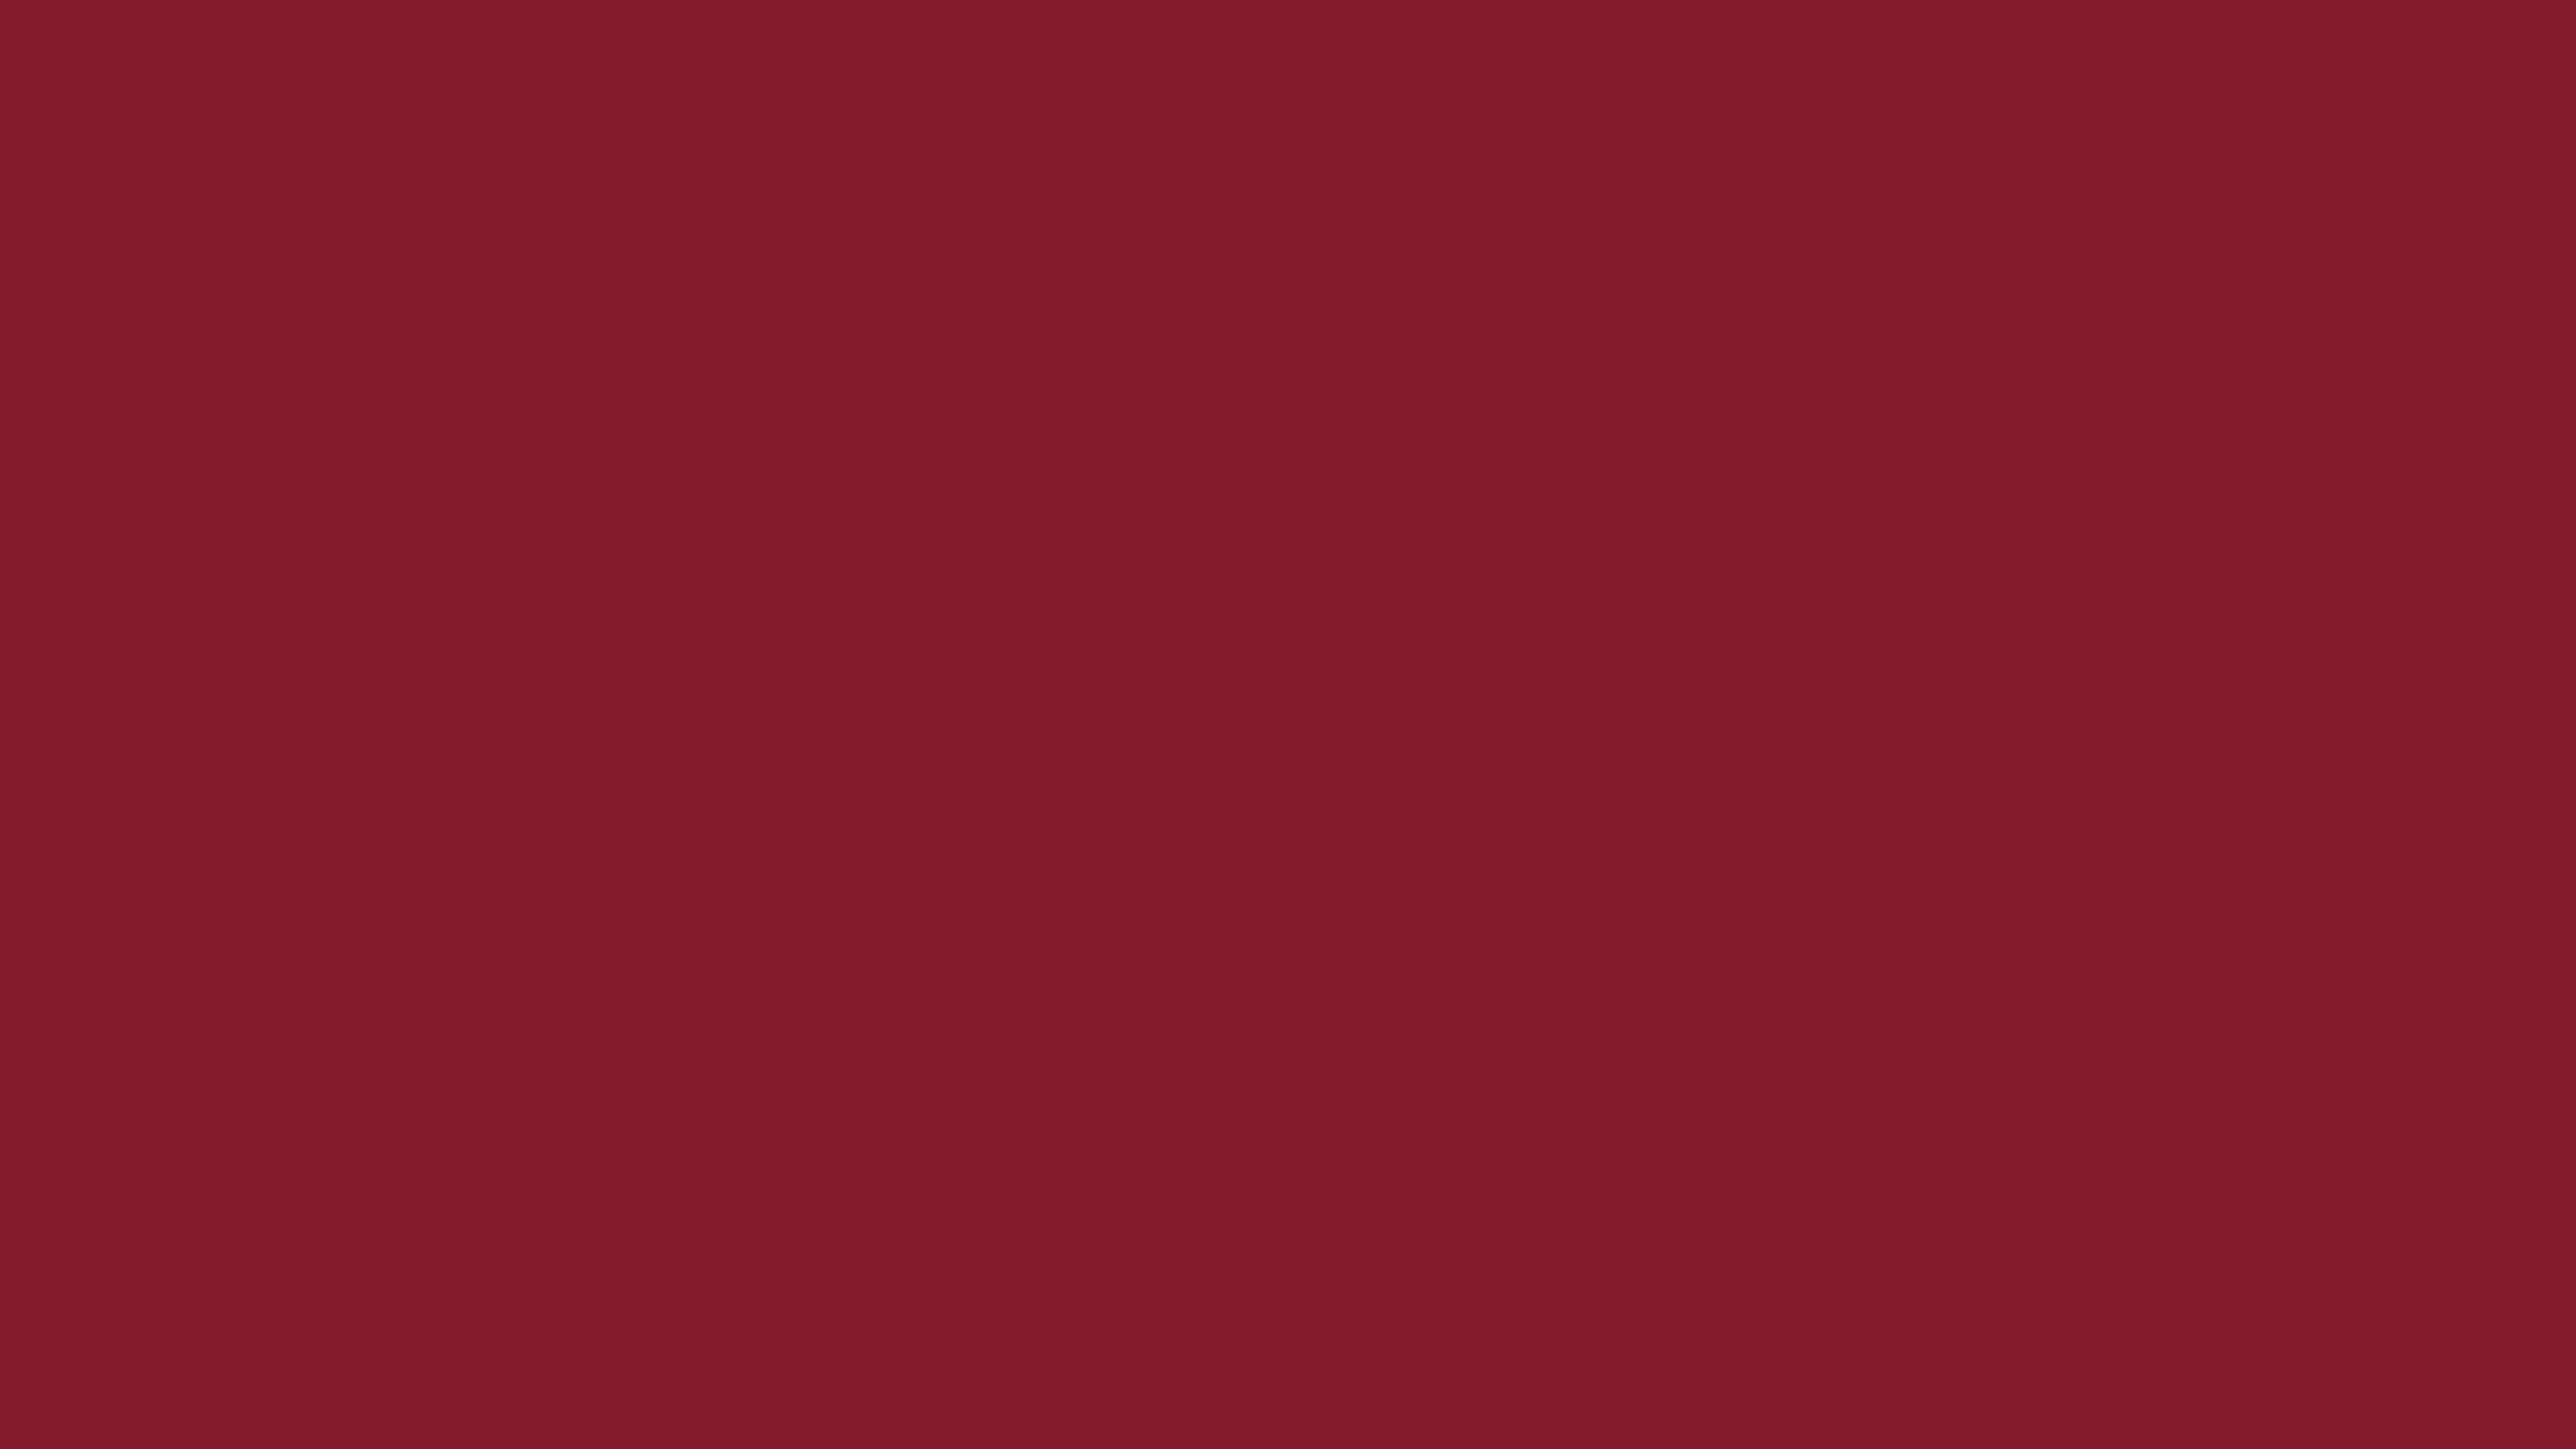 5120x2880 Antique Ruby Solid Color Background